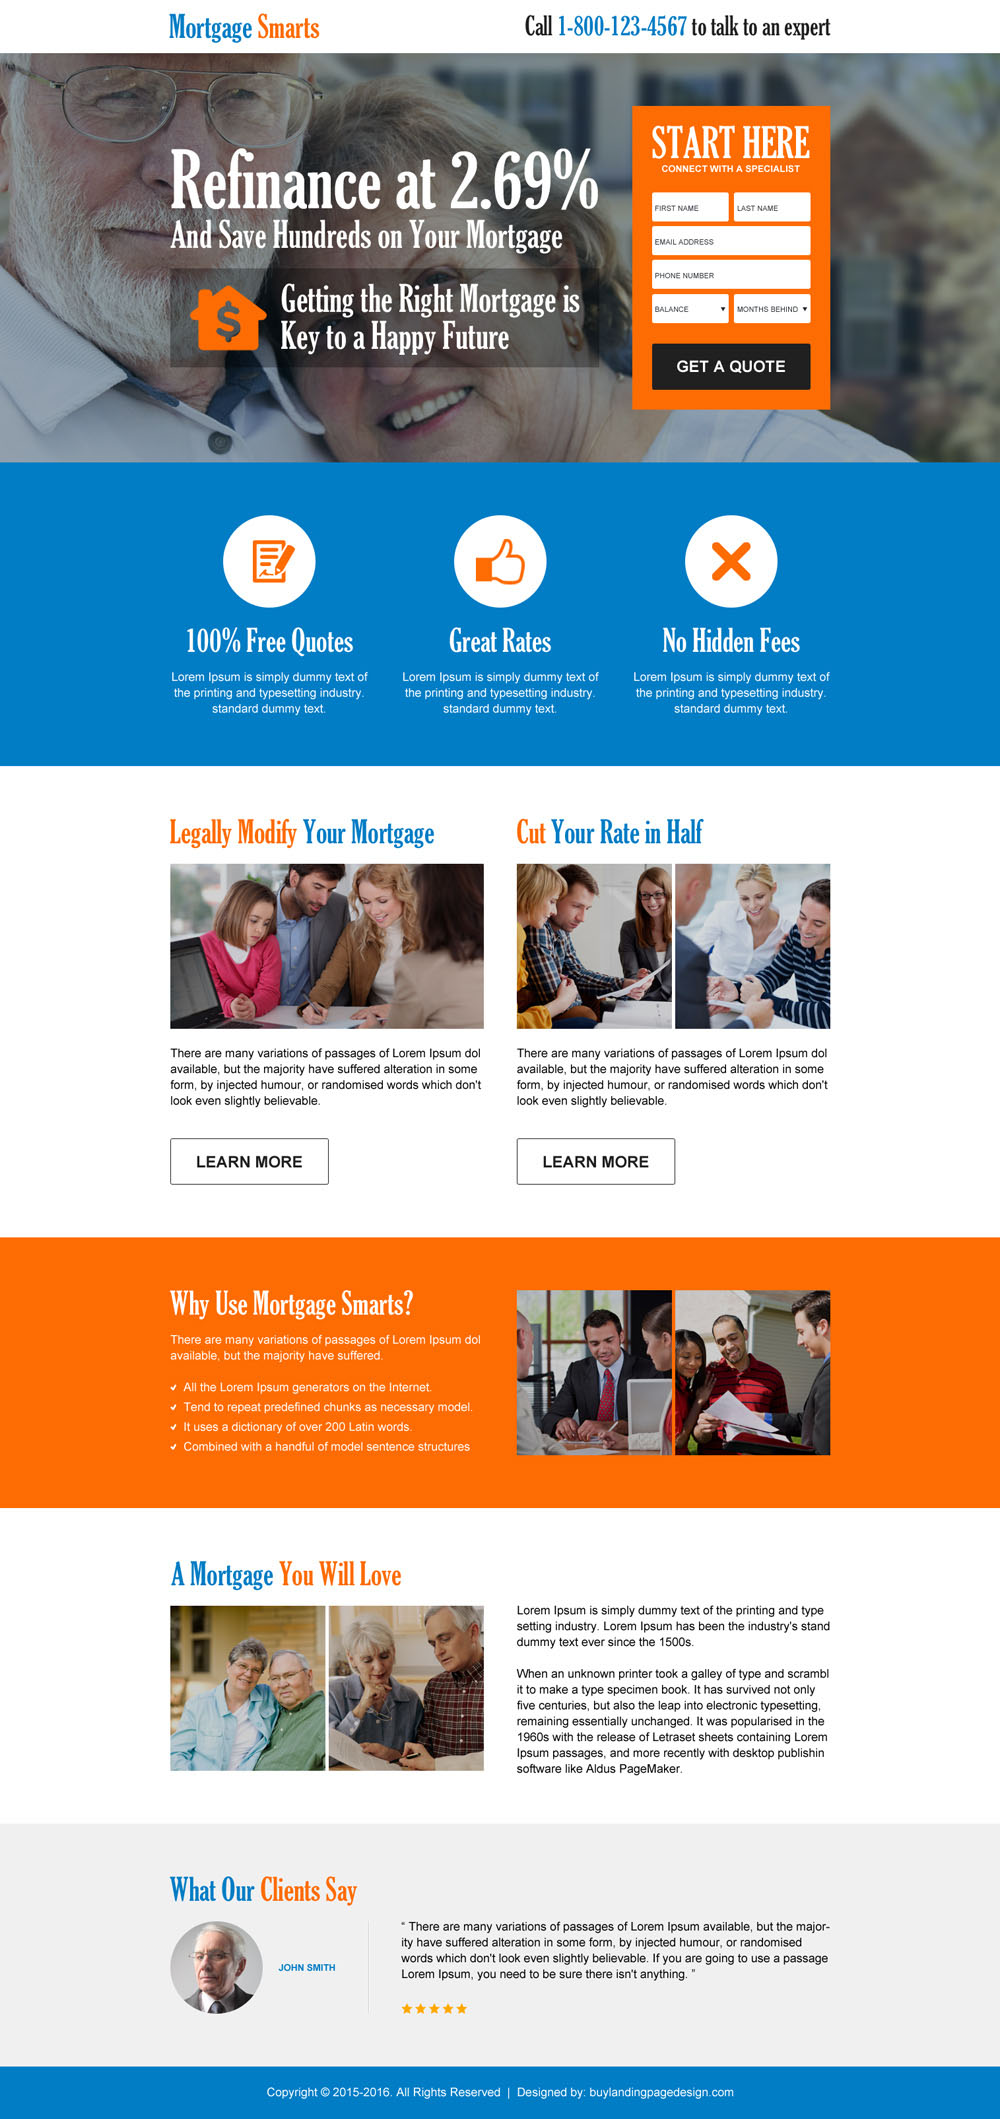 save-money-on-mortgage-consultant-business-service-lead-gen-effective-landing-page-design-017